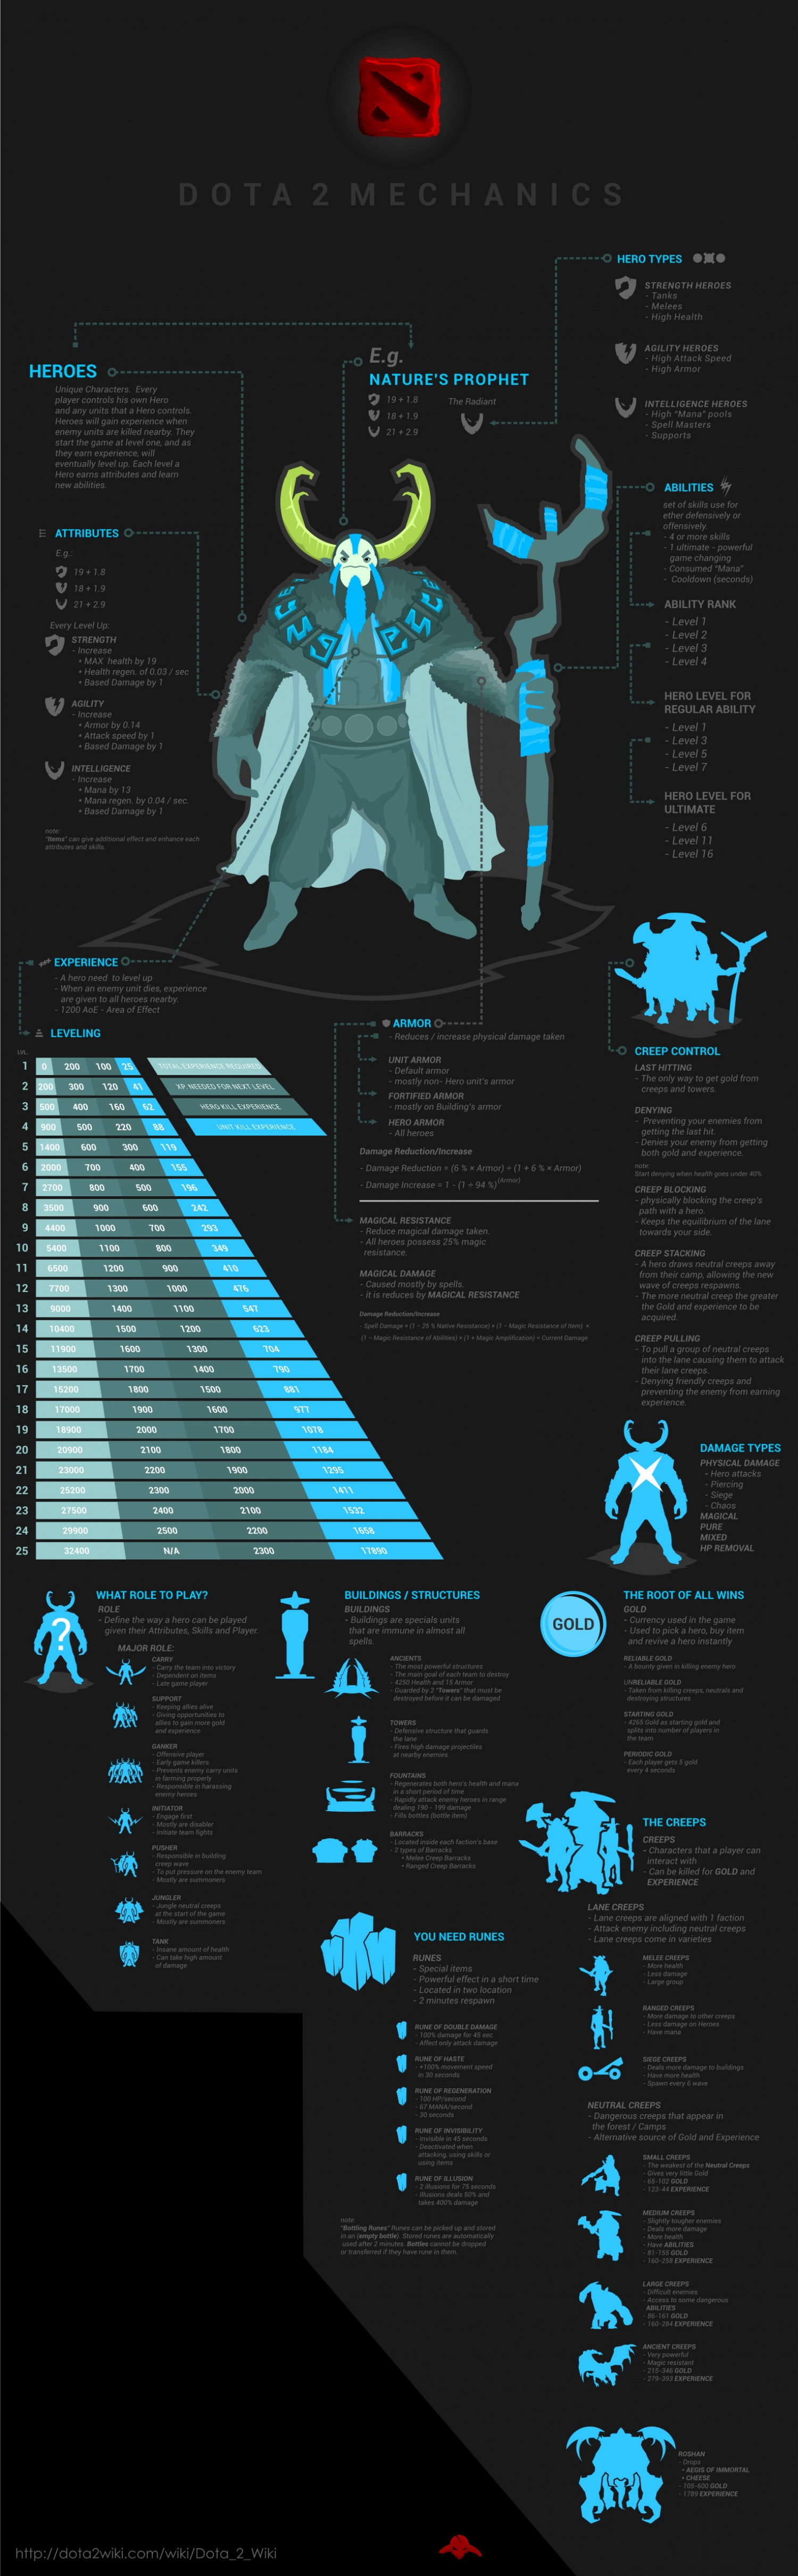 Dota 2 Mechanics  Infographic